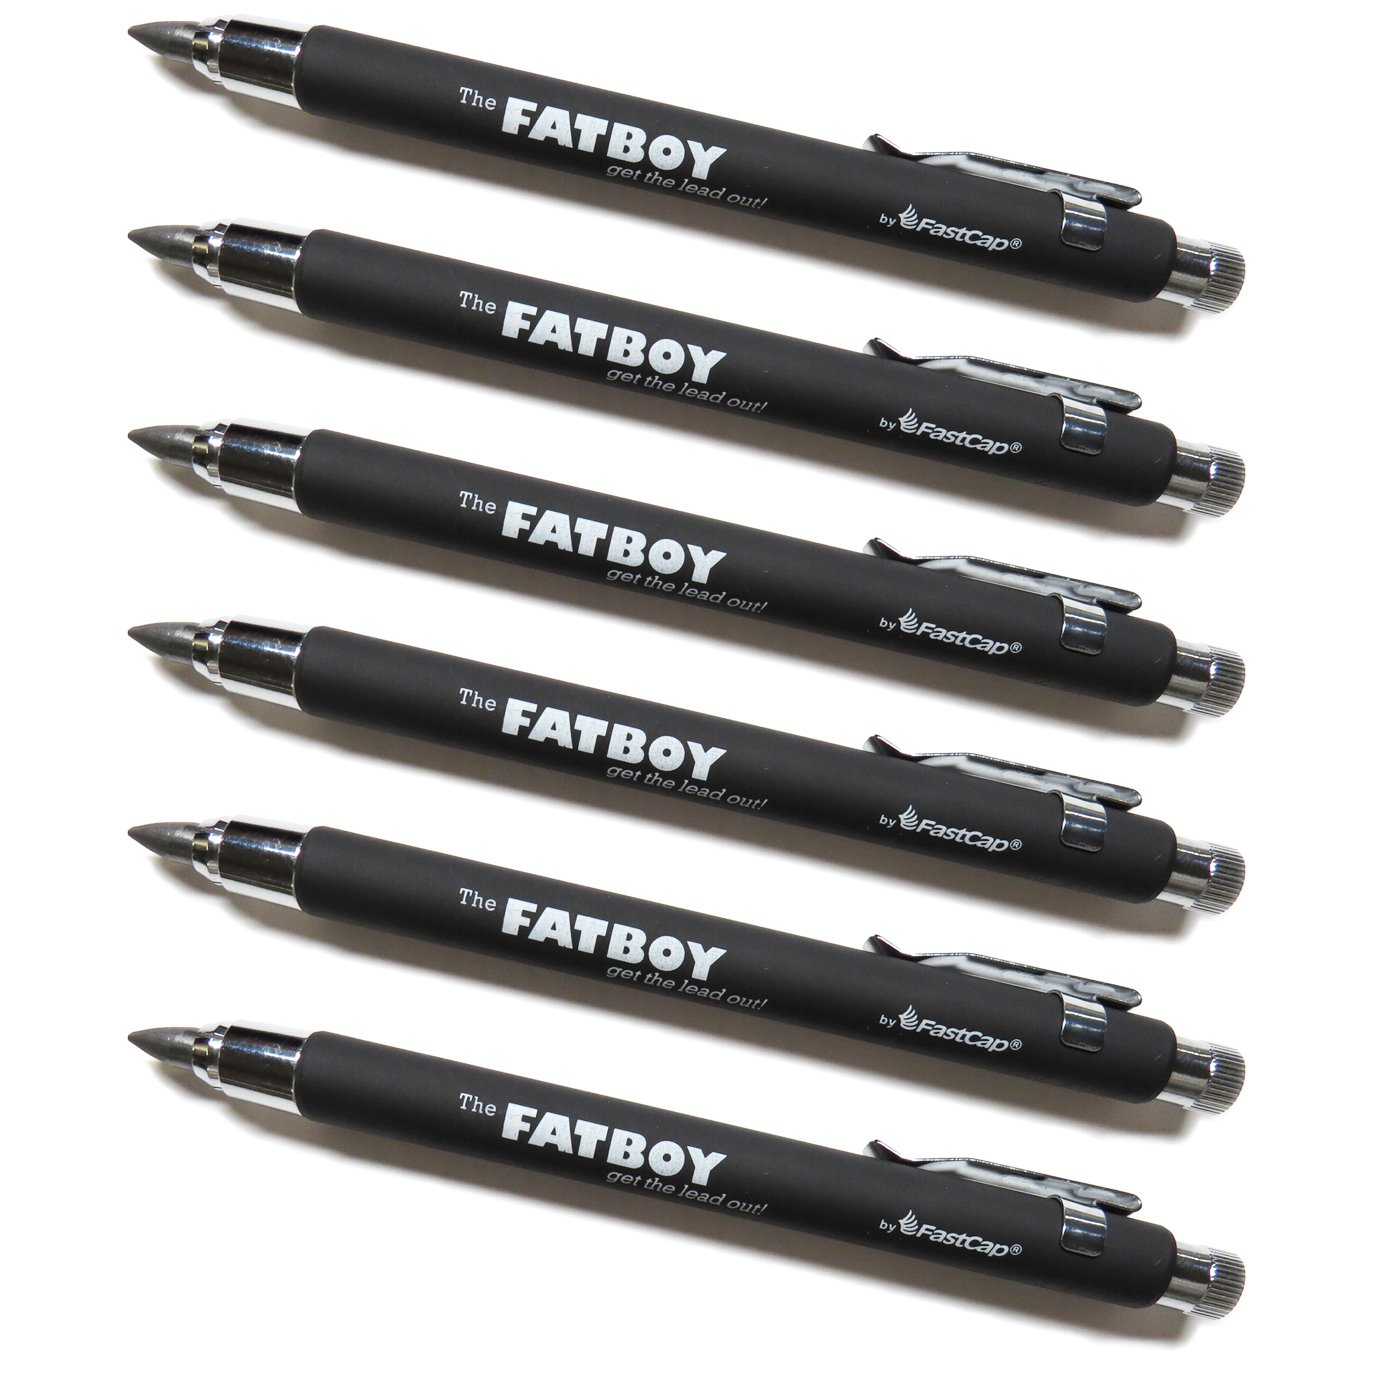 FastCap Fatboy Extreme Carpenter 5.5mm Mechanical Pencils with Clip, 6-Pack